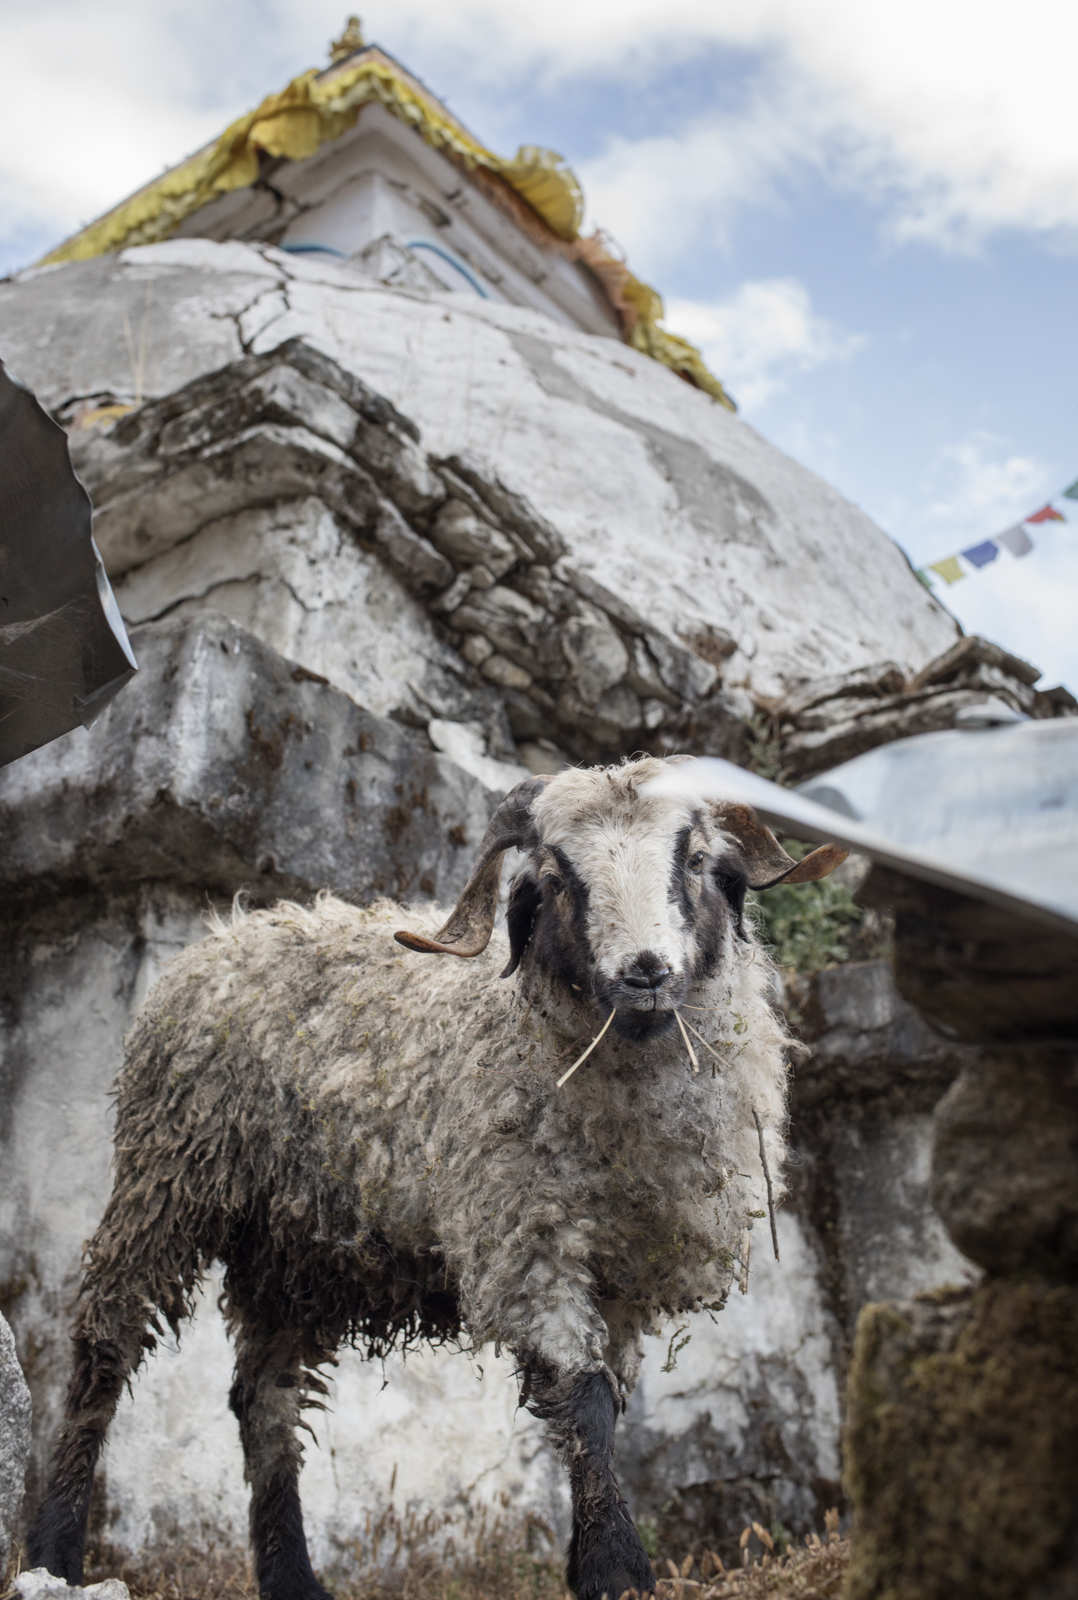 A small sheep grazes on some grass growing on the platform of an older Stupa.  Namche Baazar, Nepal.